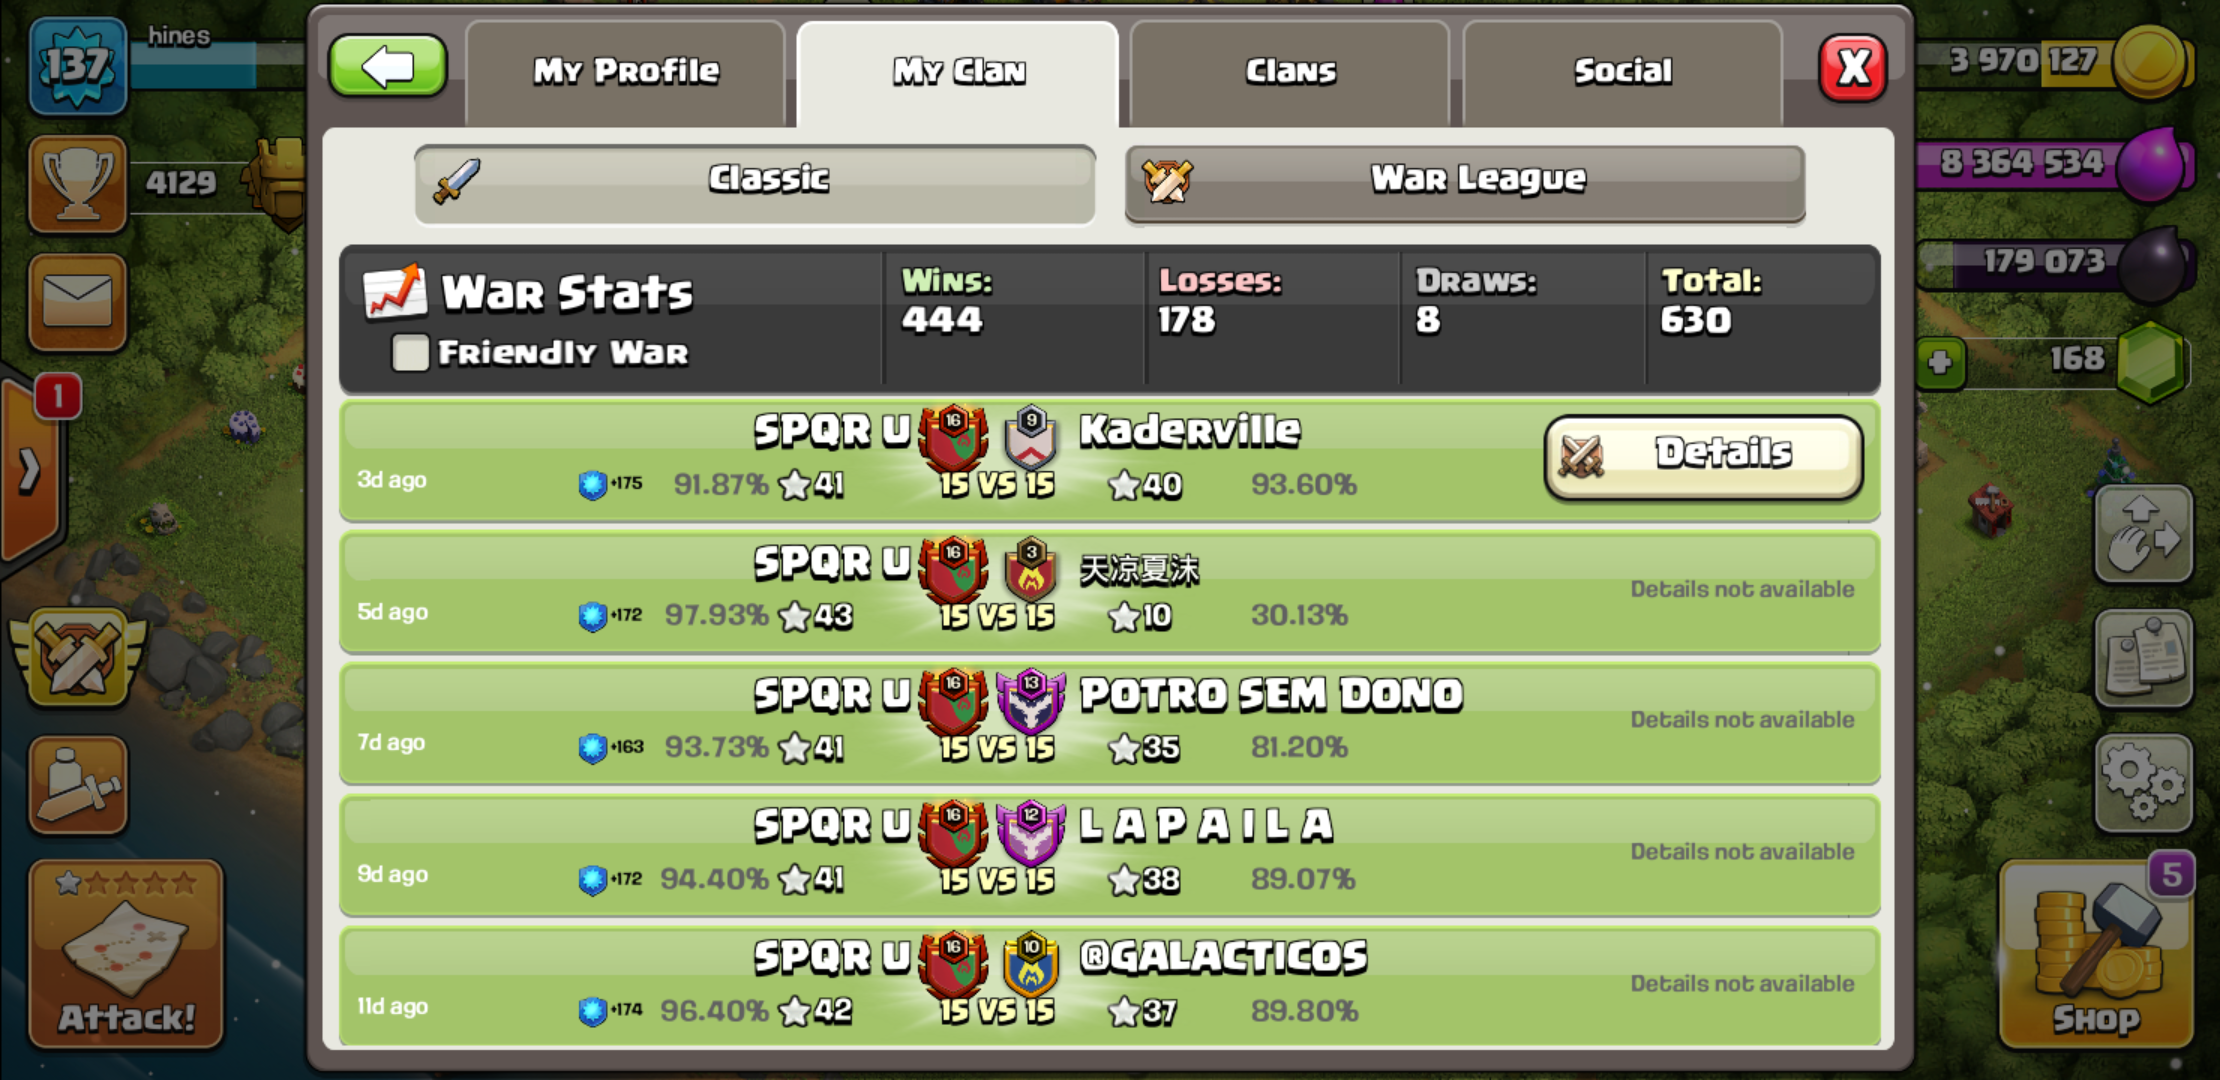 Any serious war players looking for a new, we are recruiting. 75% win rate with 400 + wins